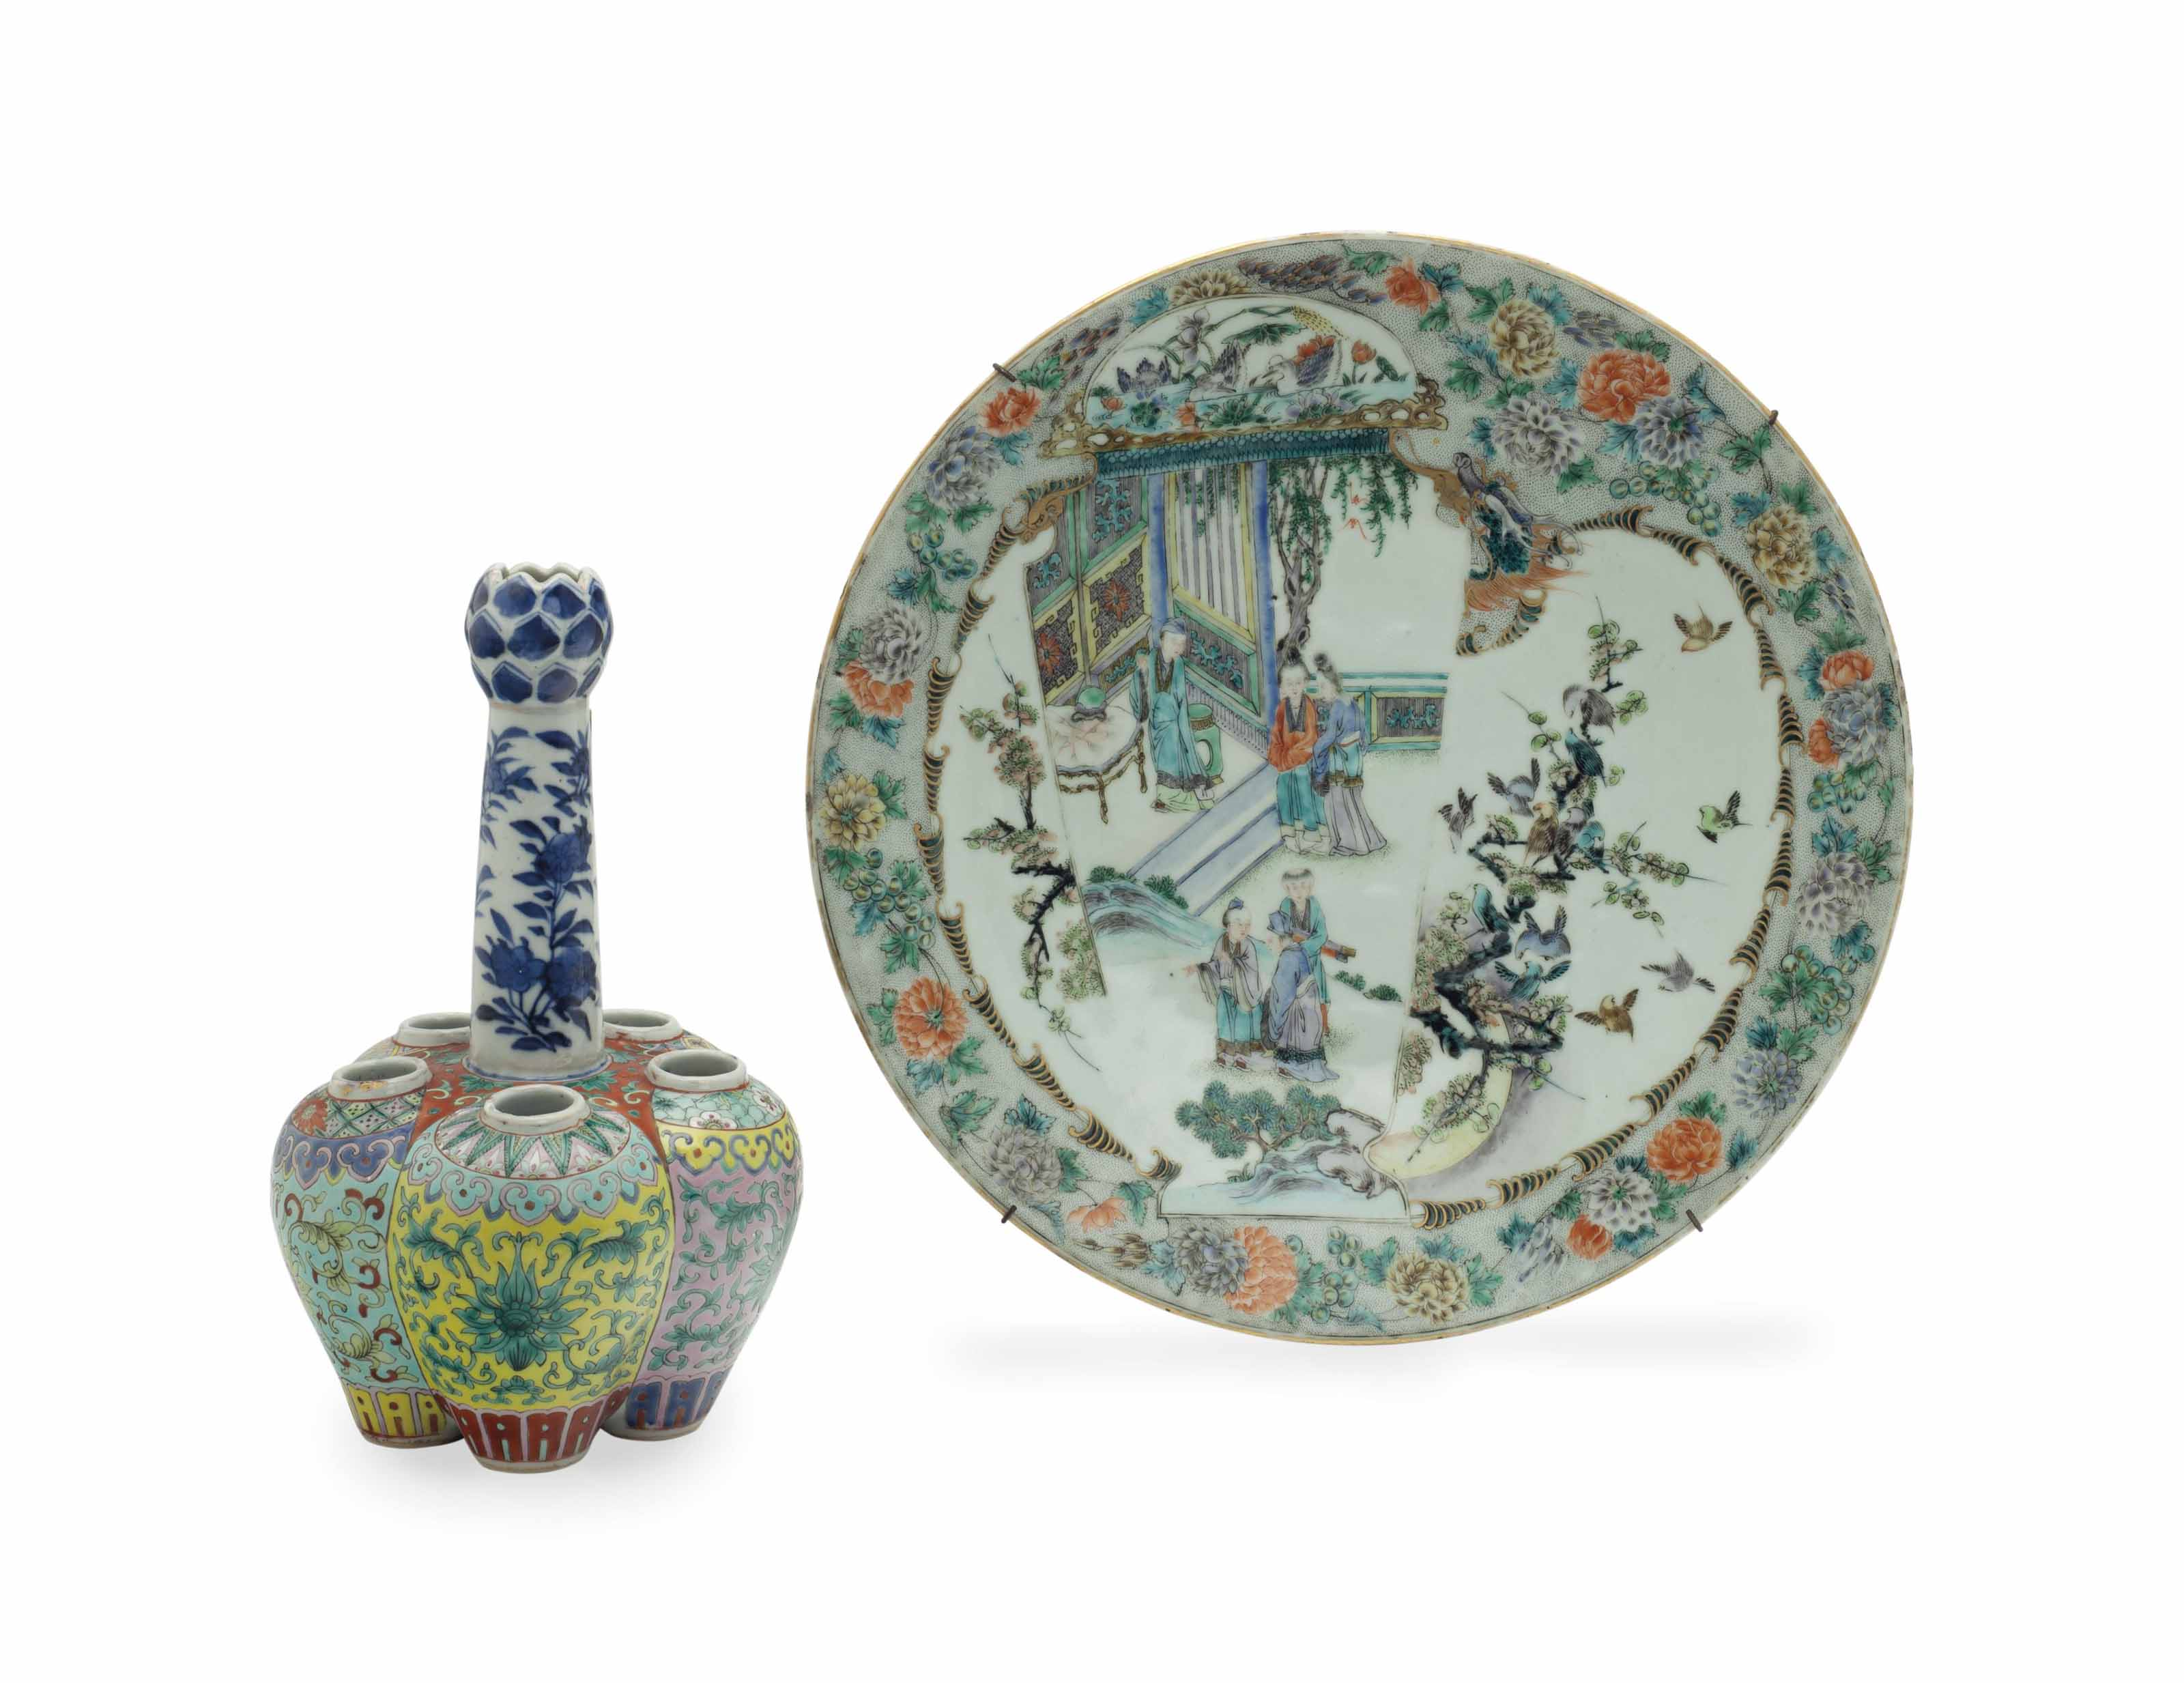 A CHINESE FAMILLE VERTE CHARGER, AND A FAMILLE ROSE GARLIC-MOUTH VASE,